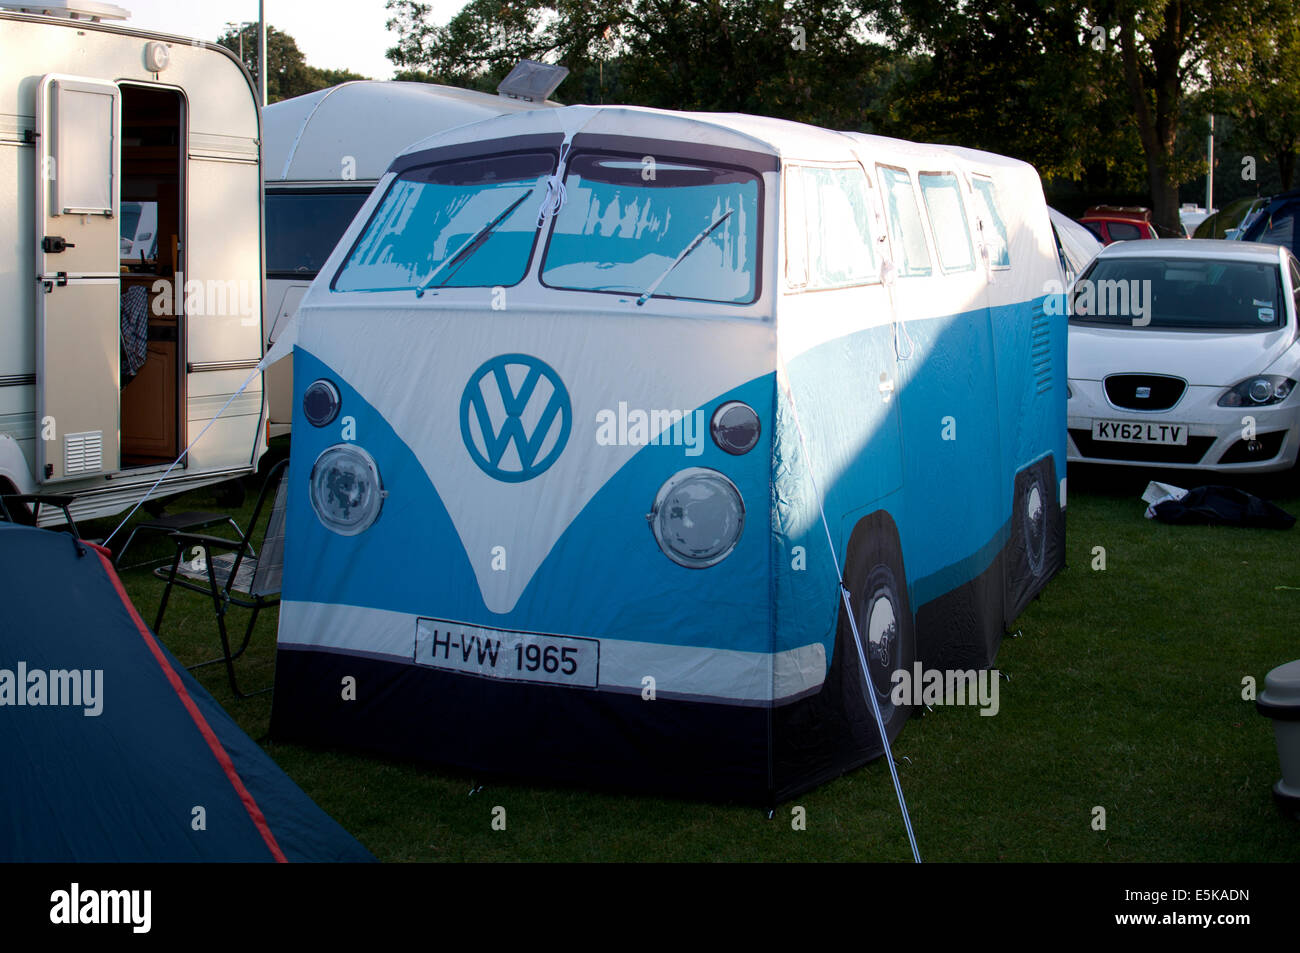 VW c&er van tent at Warwick Folk Festival c&site & VW camper van tent at Warwick Folk Festival campsite Stock Photo ...